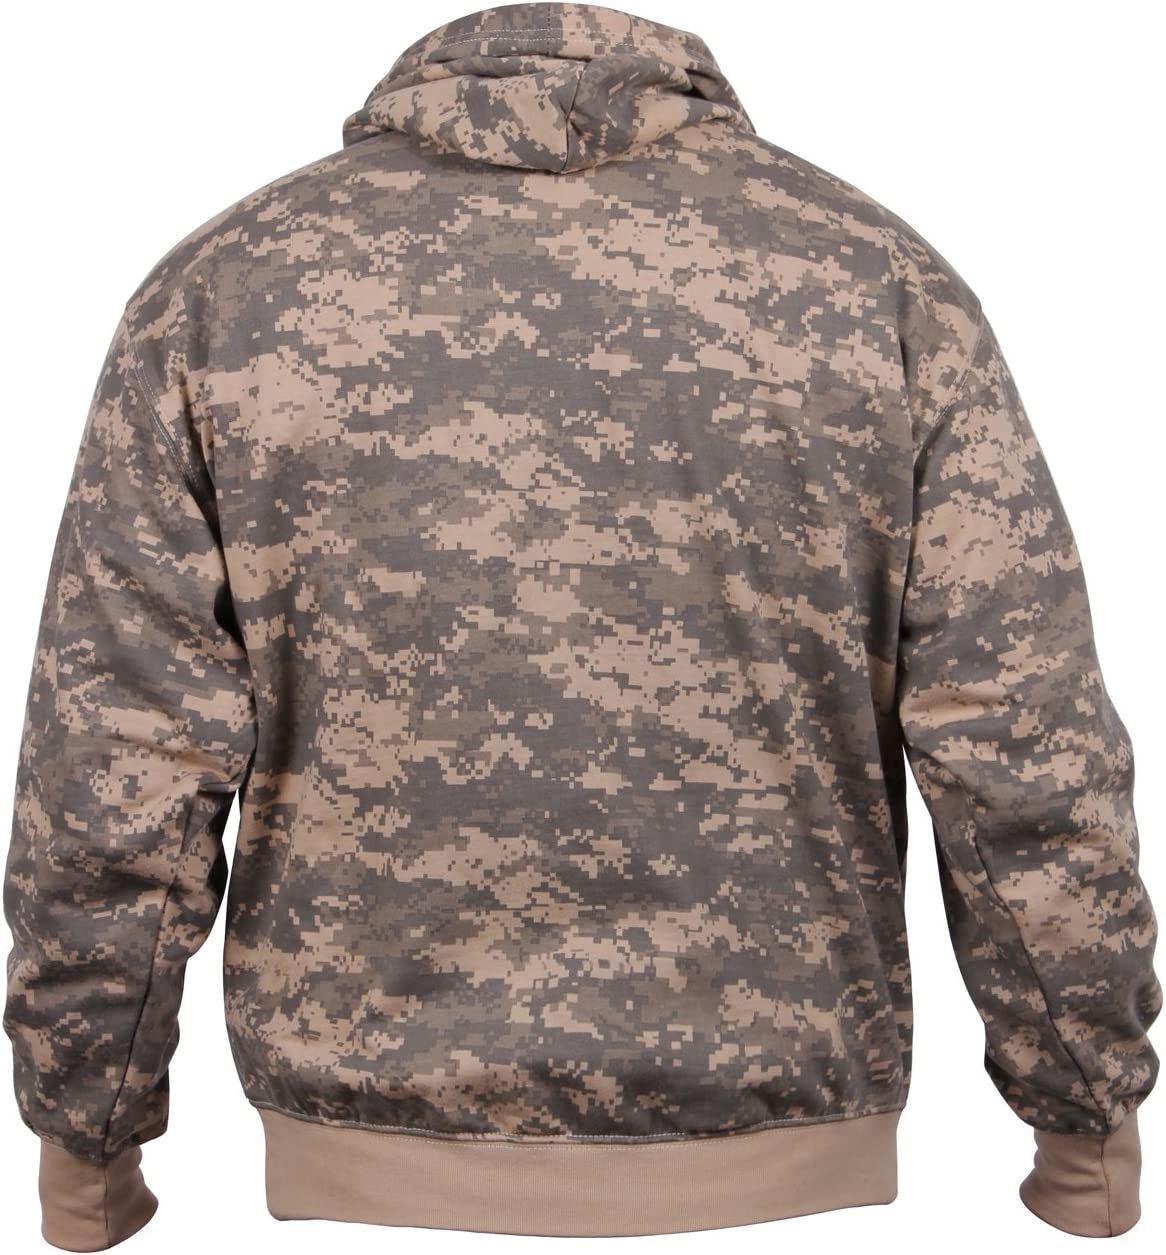 Rothco Camo Pullover Hooded Sweatshirt Outerwear